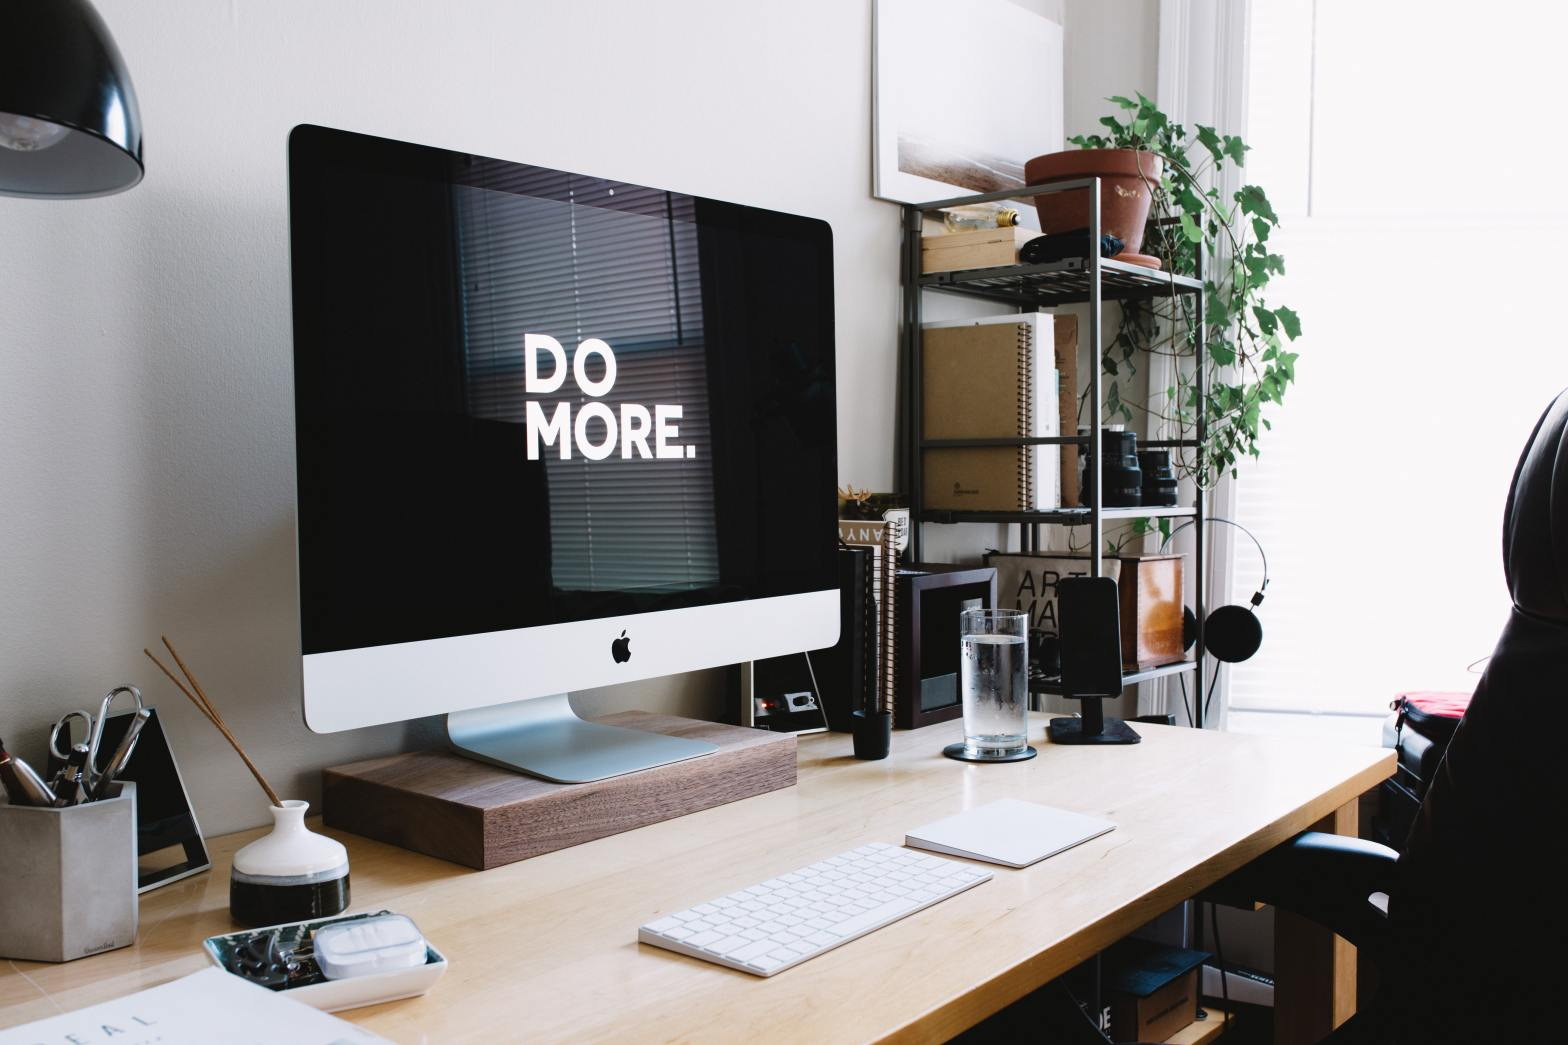 Carl Heyerdahl via Unsplash - Productivity